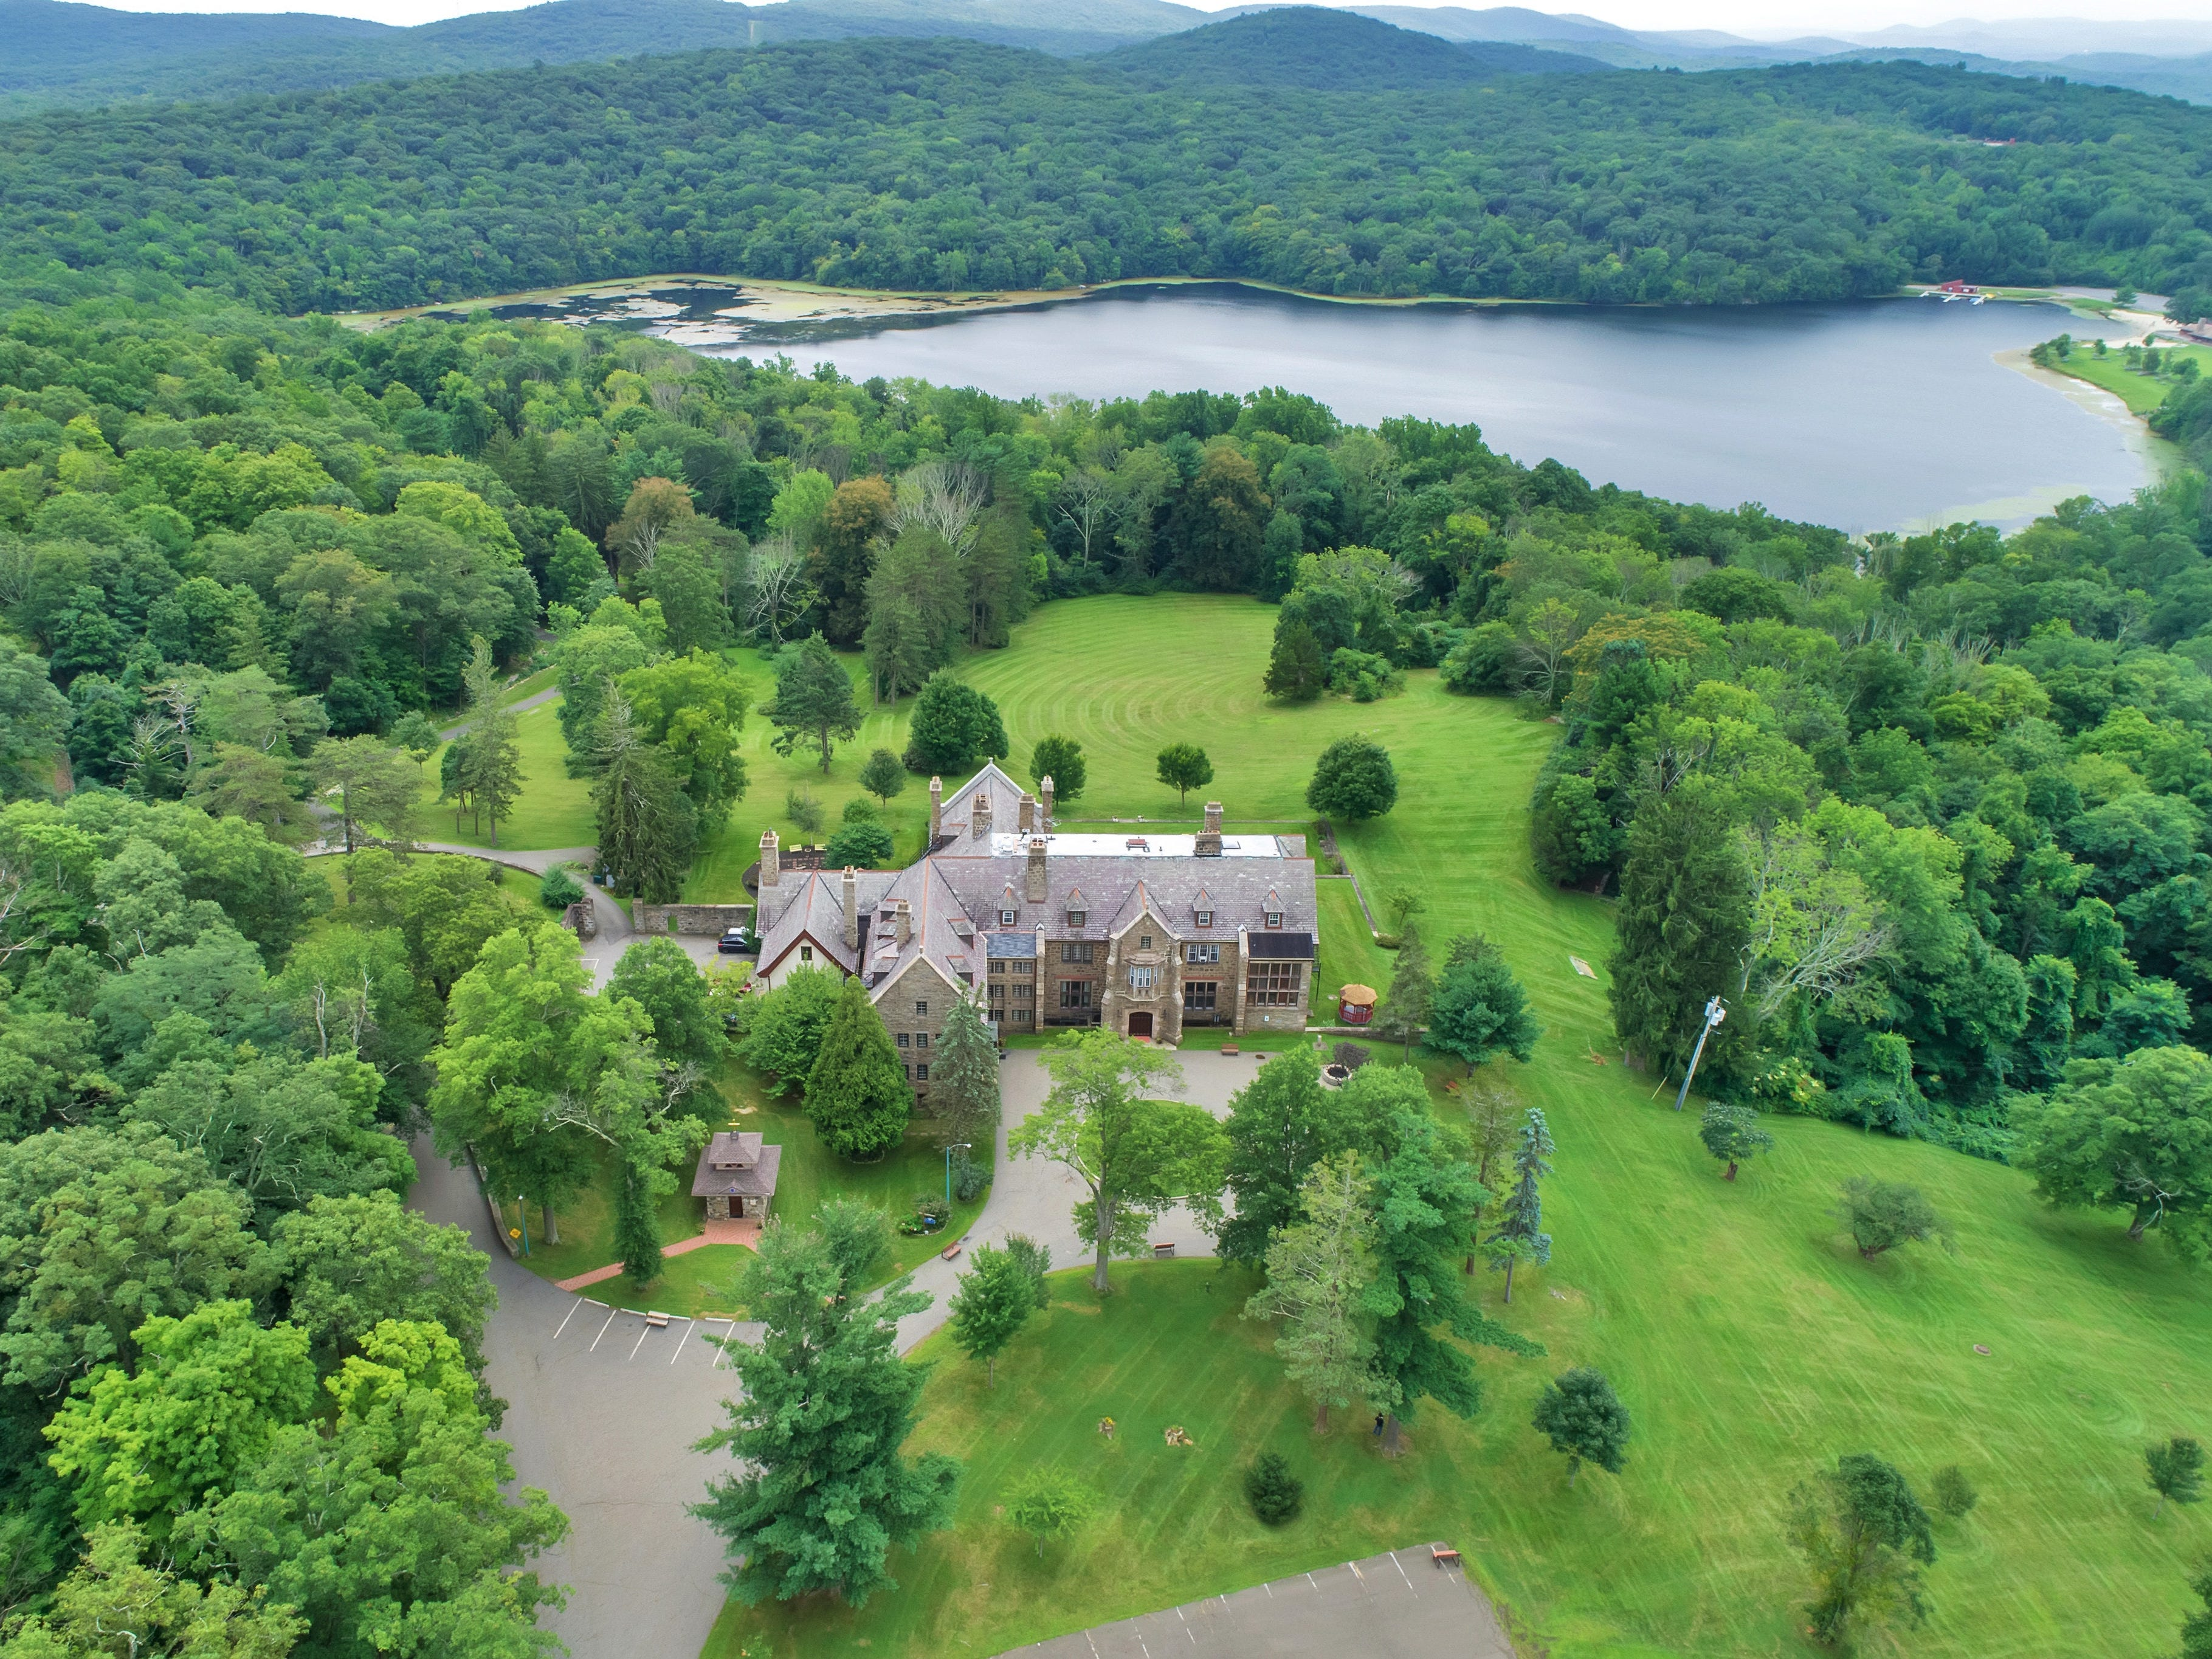 A 40-acre estate at 150 Sisters Servants Lane in Sloatsburg is up for sale at $22 million.